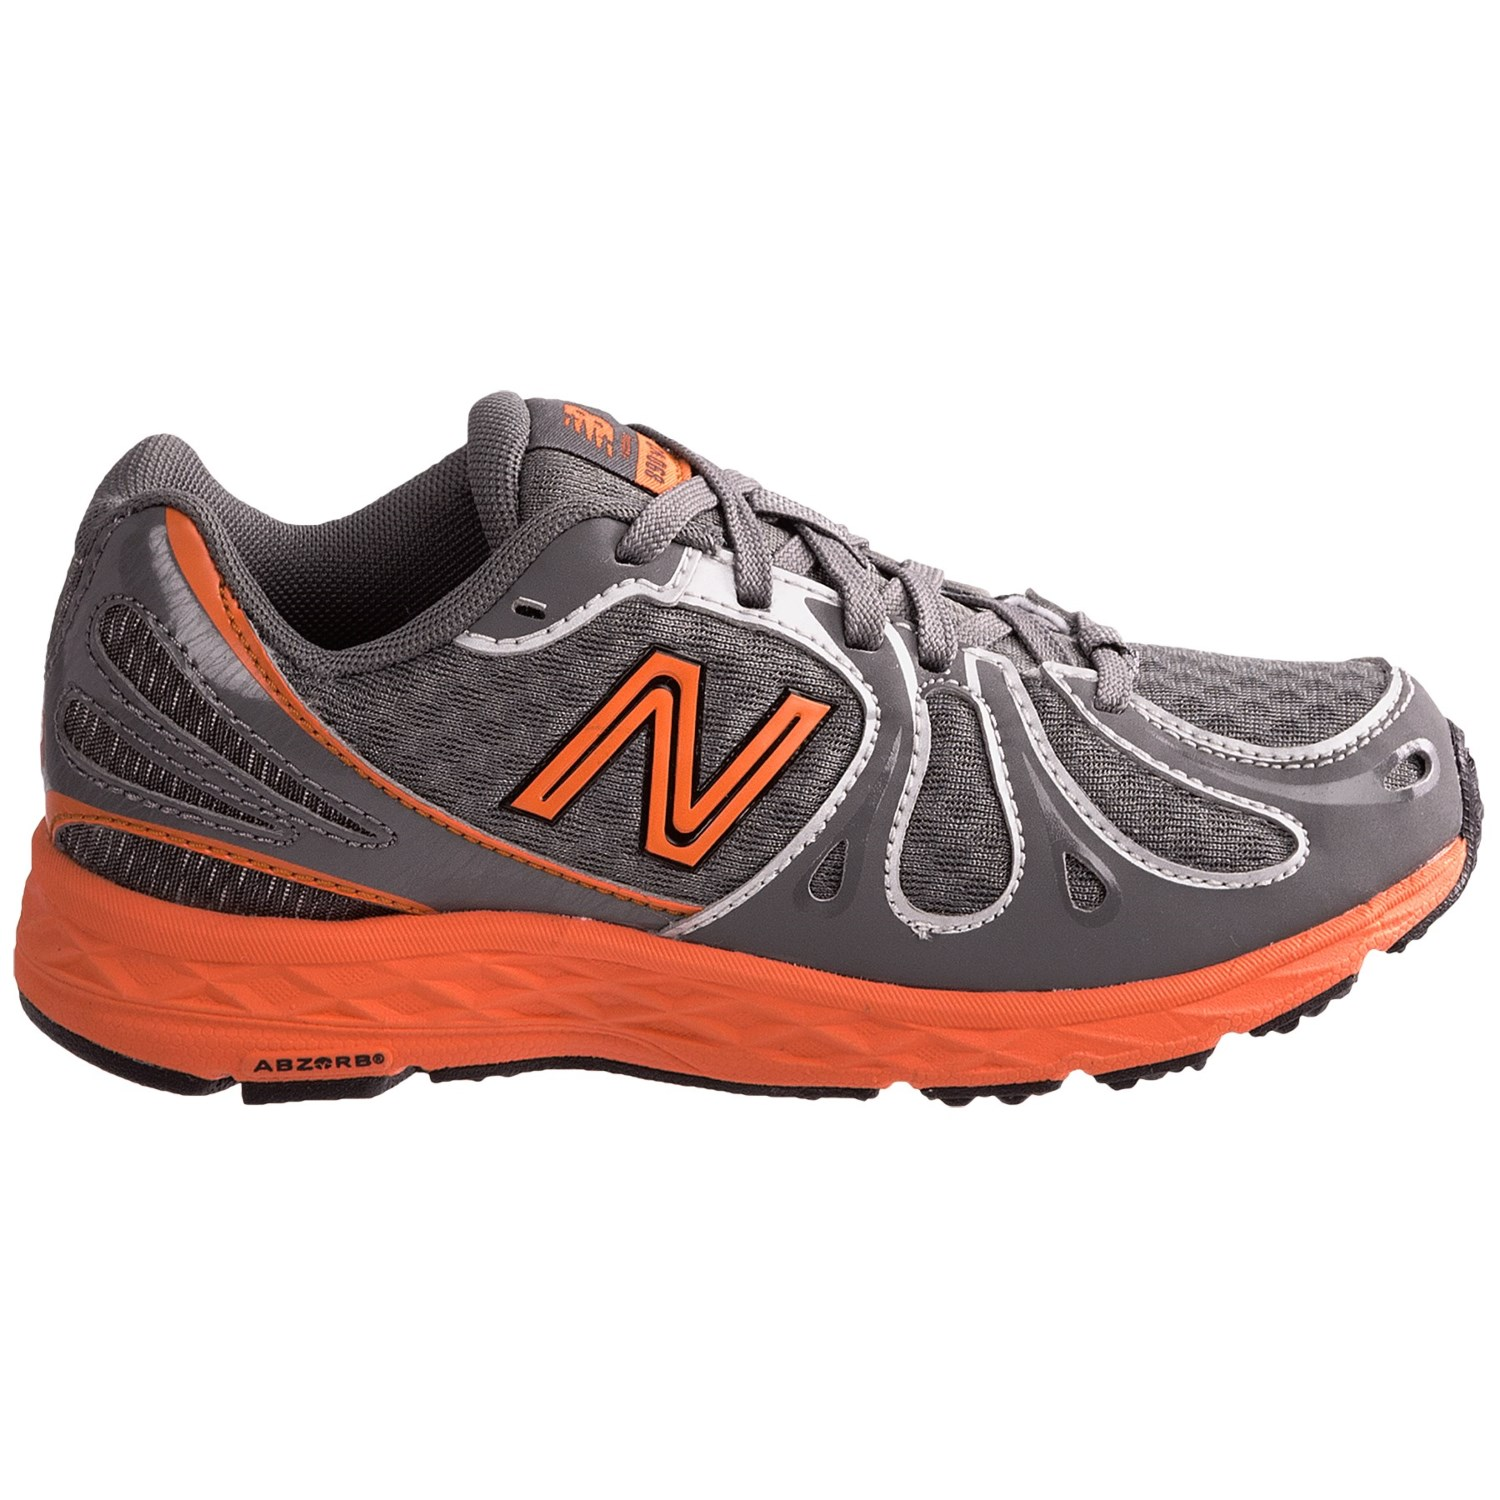 Clearance Running Shoes Australia